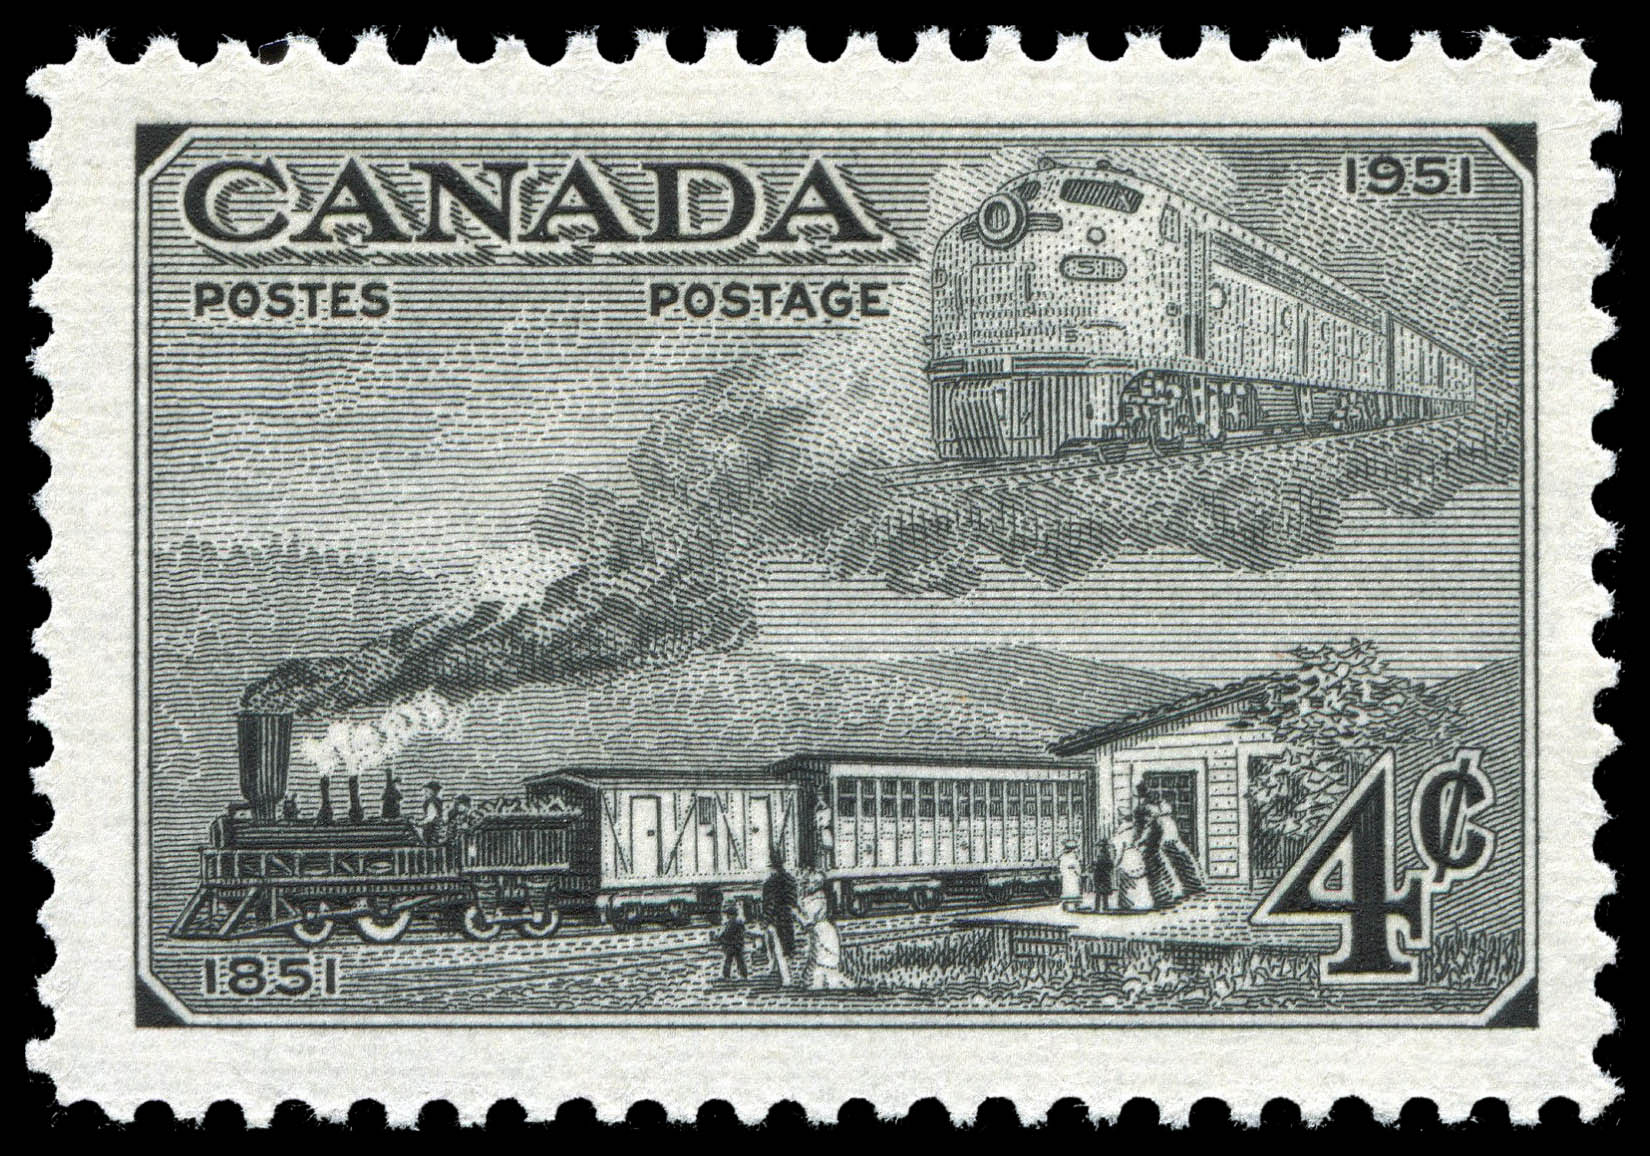 Trains of 1851 & 1951 Canada Postage Stamp | Centennial of British North American Postal Administration